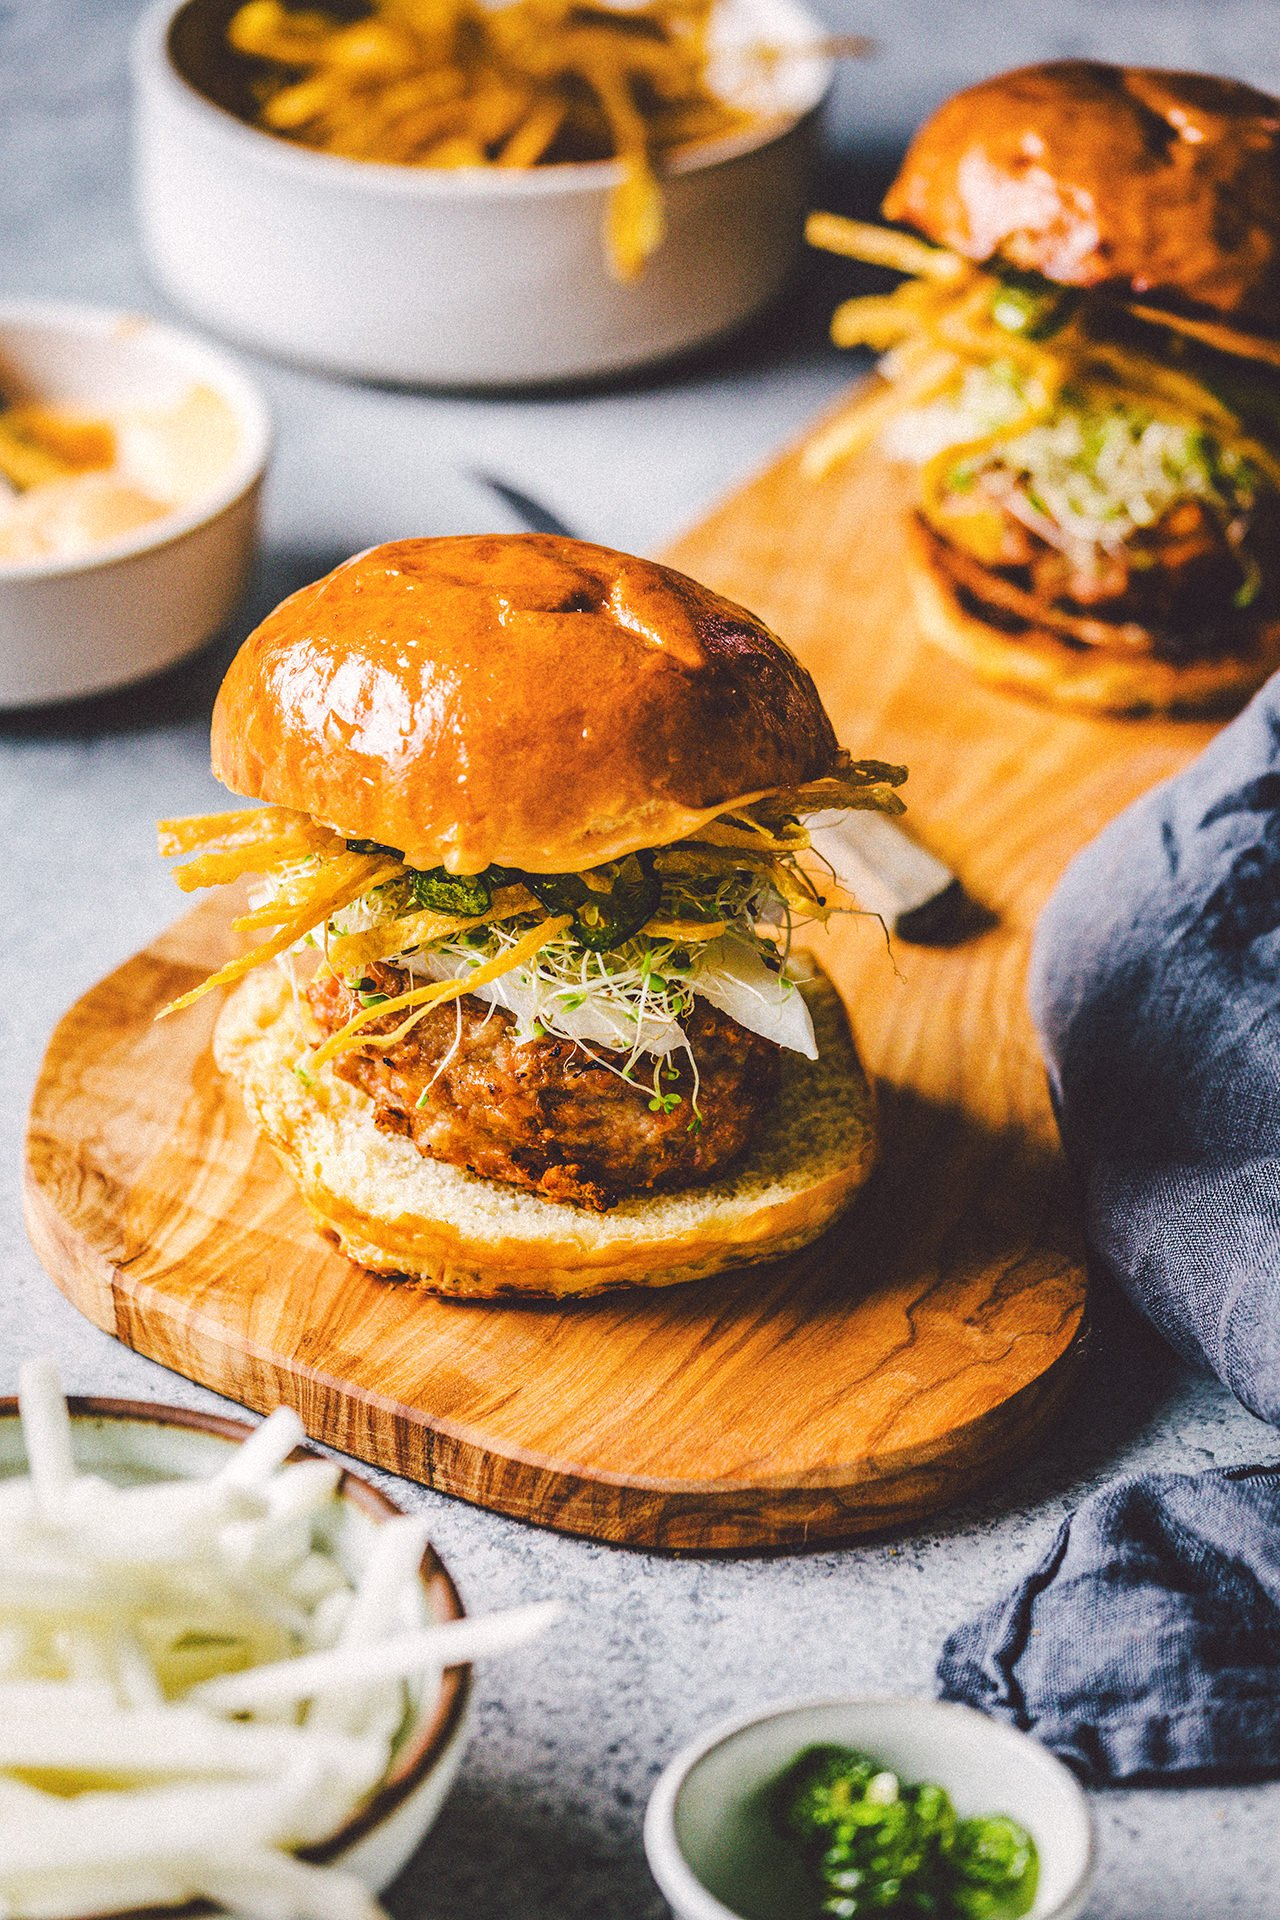 Chicken Burgers with Jicama and Candied Jalapeños | HonestlyYUM (honestlyyum.com)